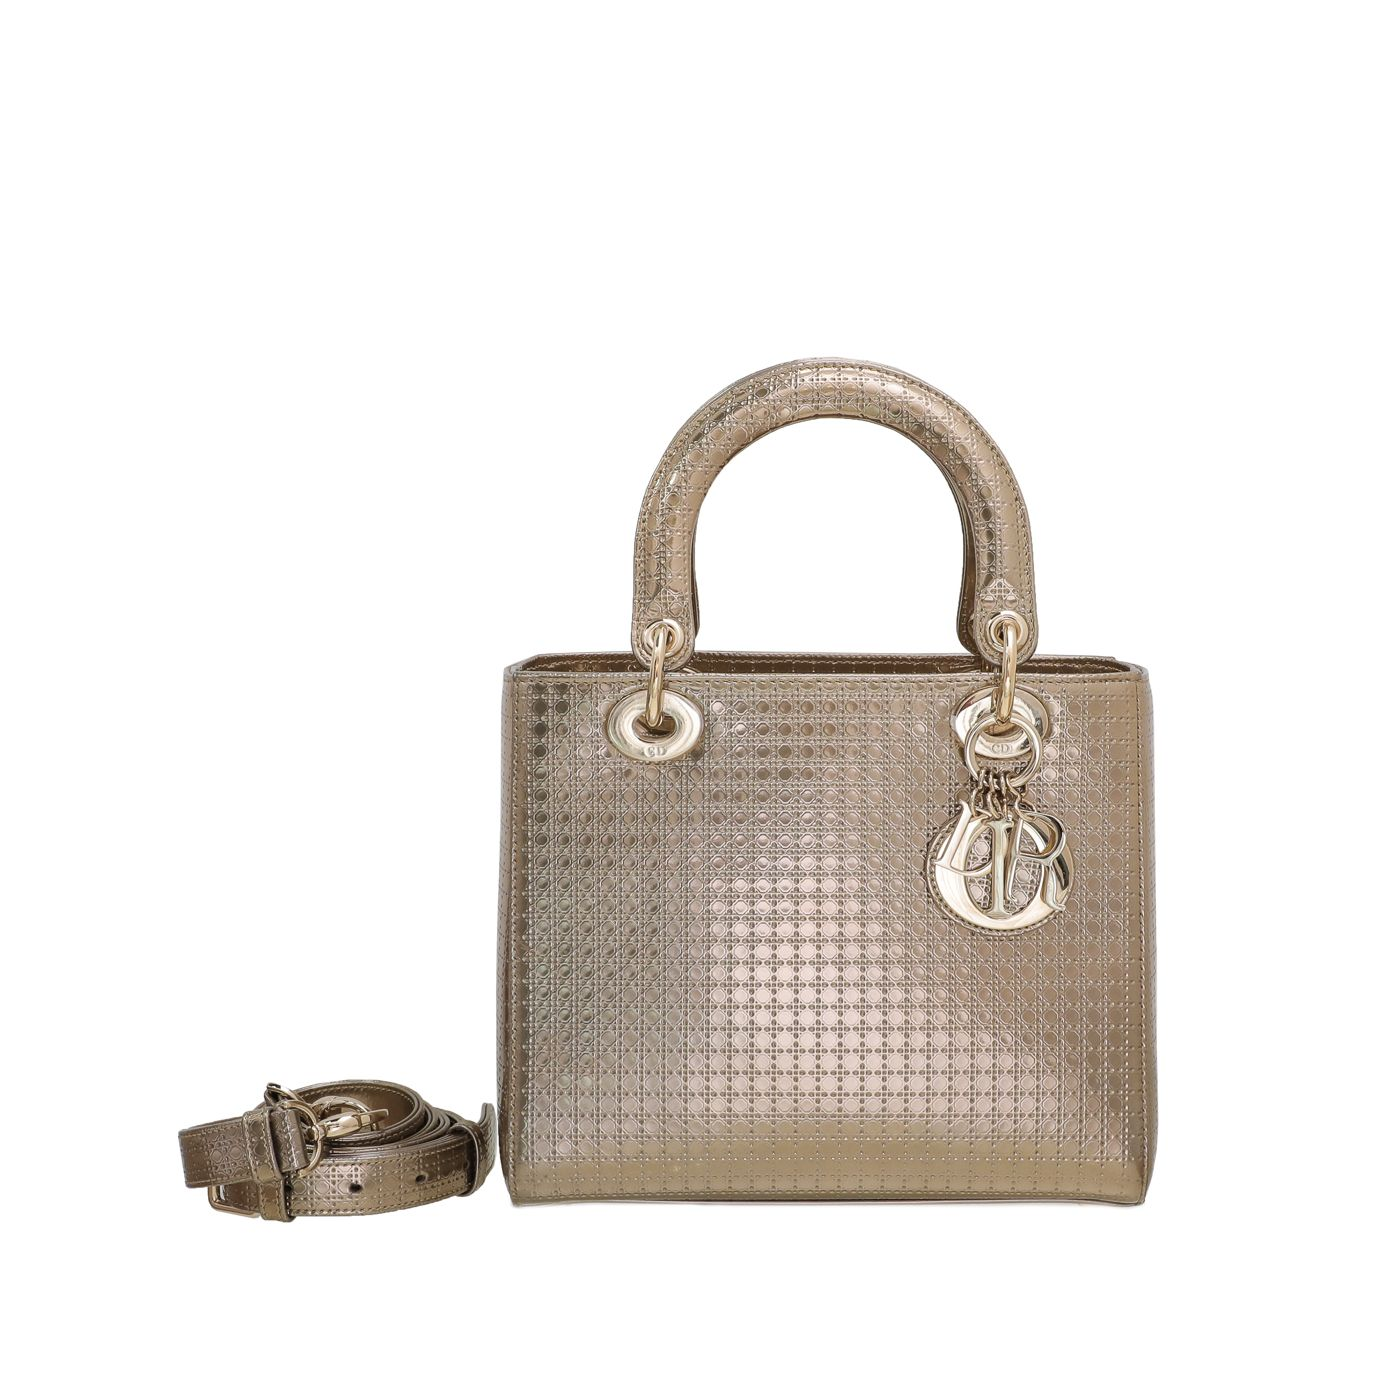 Christian Dior Champagne Lady Dior Micro Cannage Medium Bag